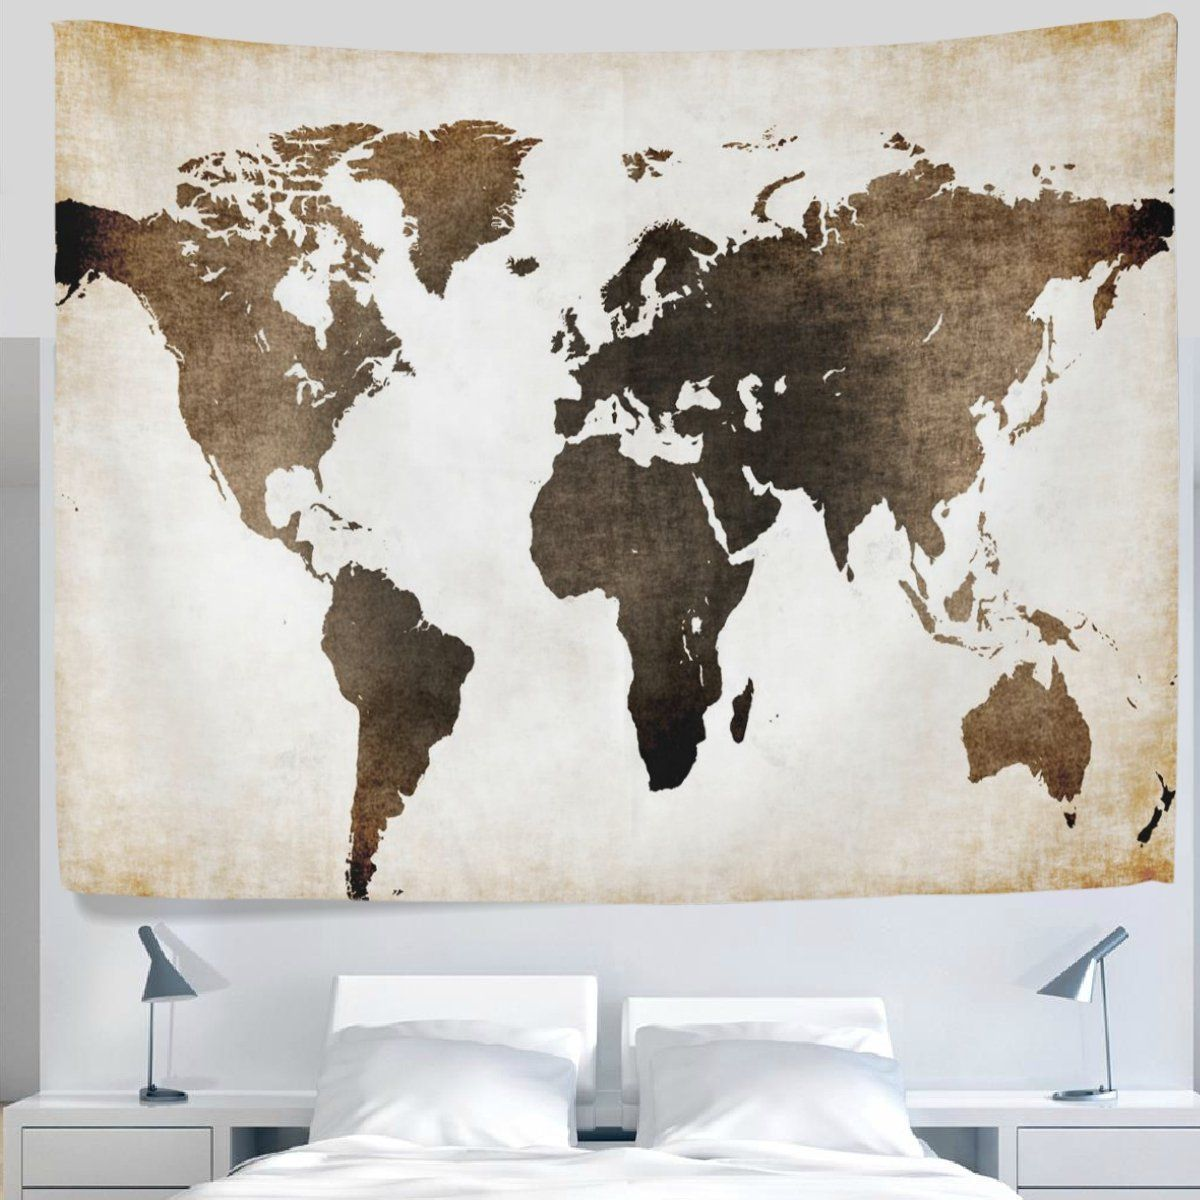 Alaza Antique Old Fashioned Retro Vintage World Map Tapestry Wall Hanging Decor Light Weight Polyester Fabric C World Map Tapestry Dorm Wall Art Old World Maps